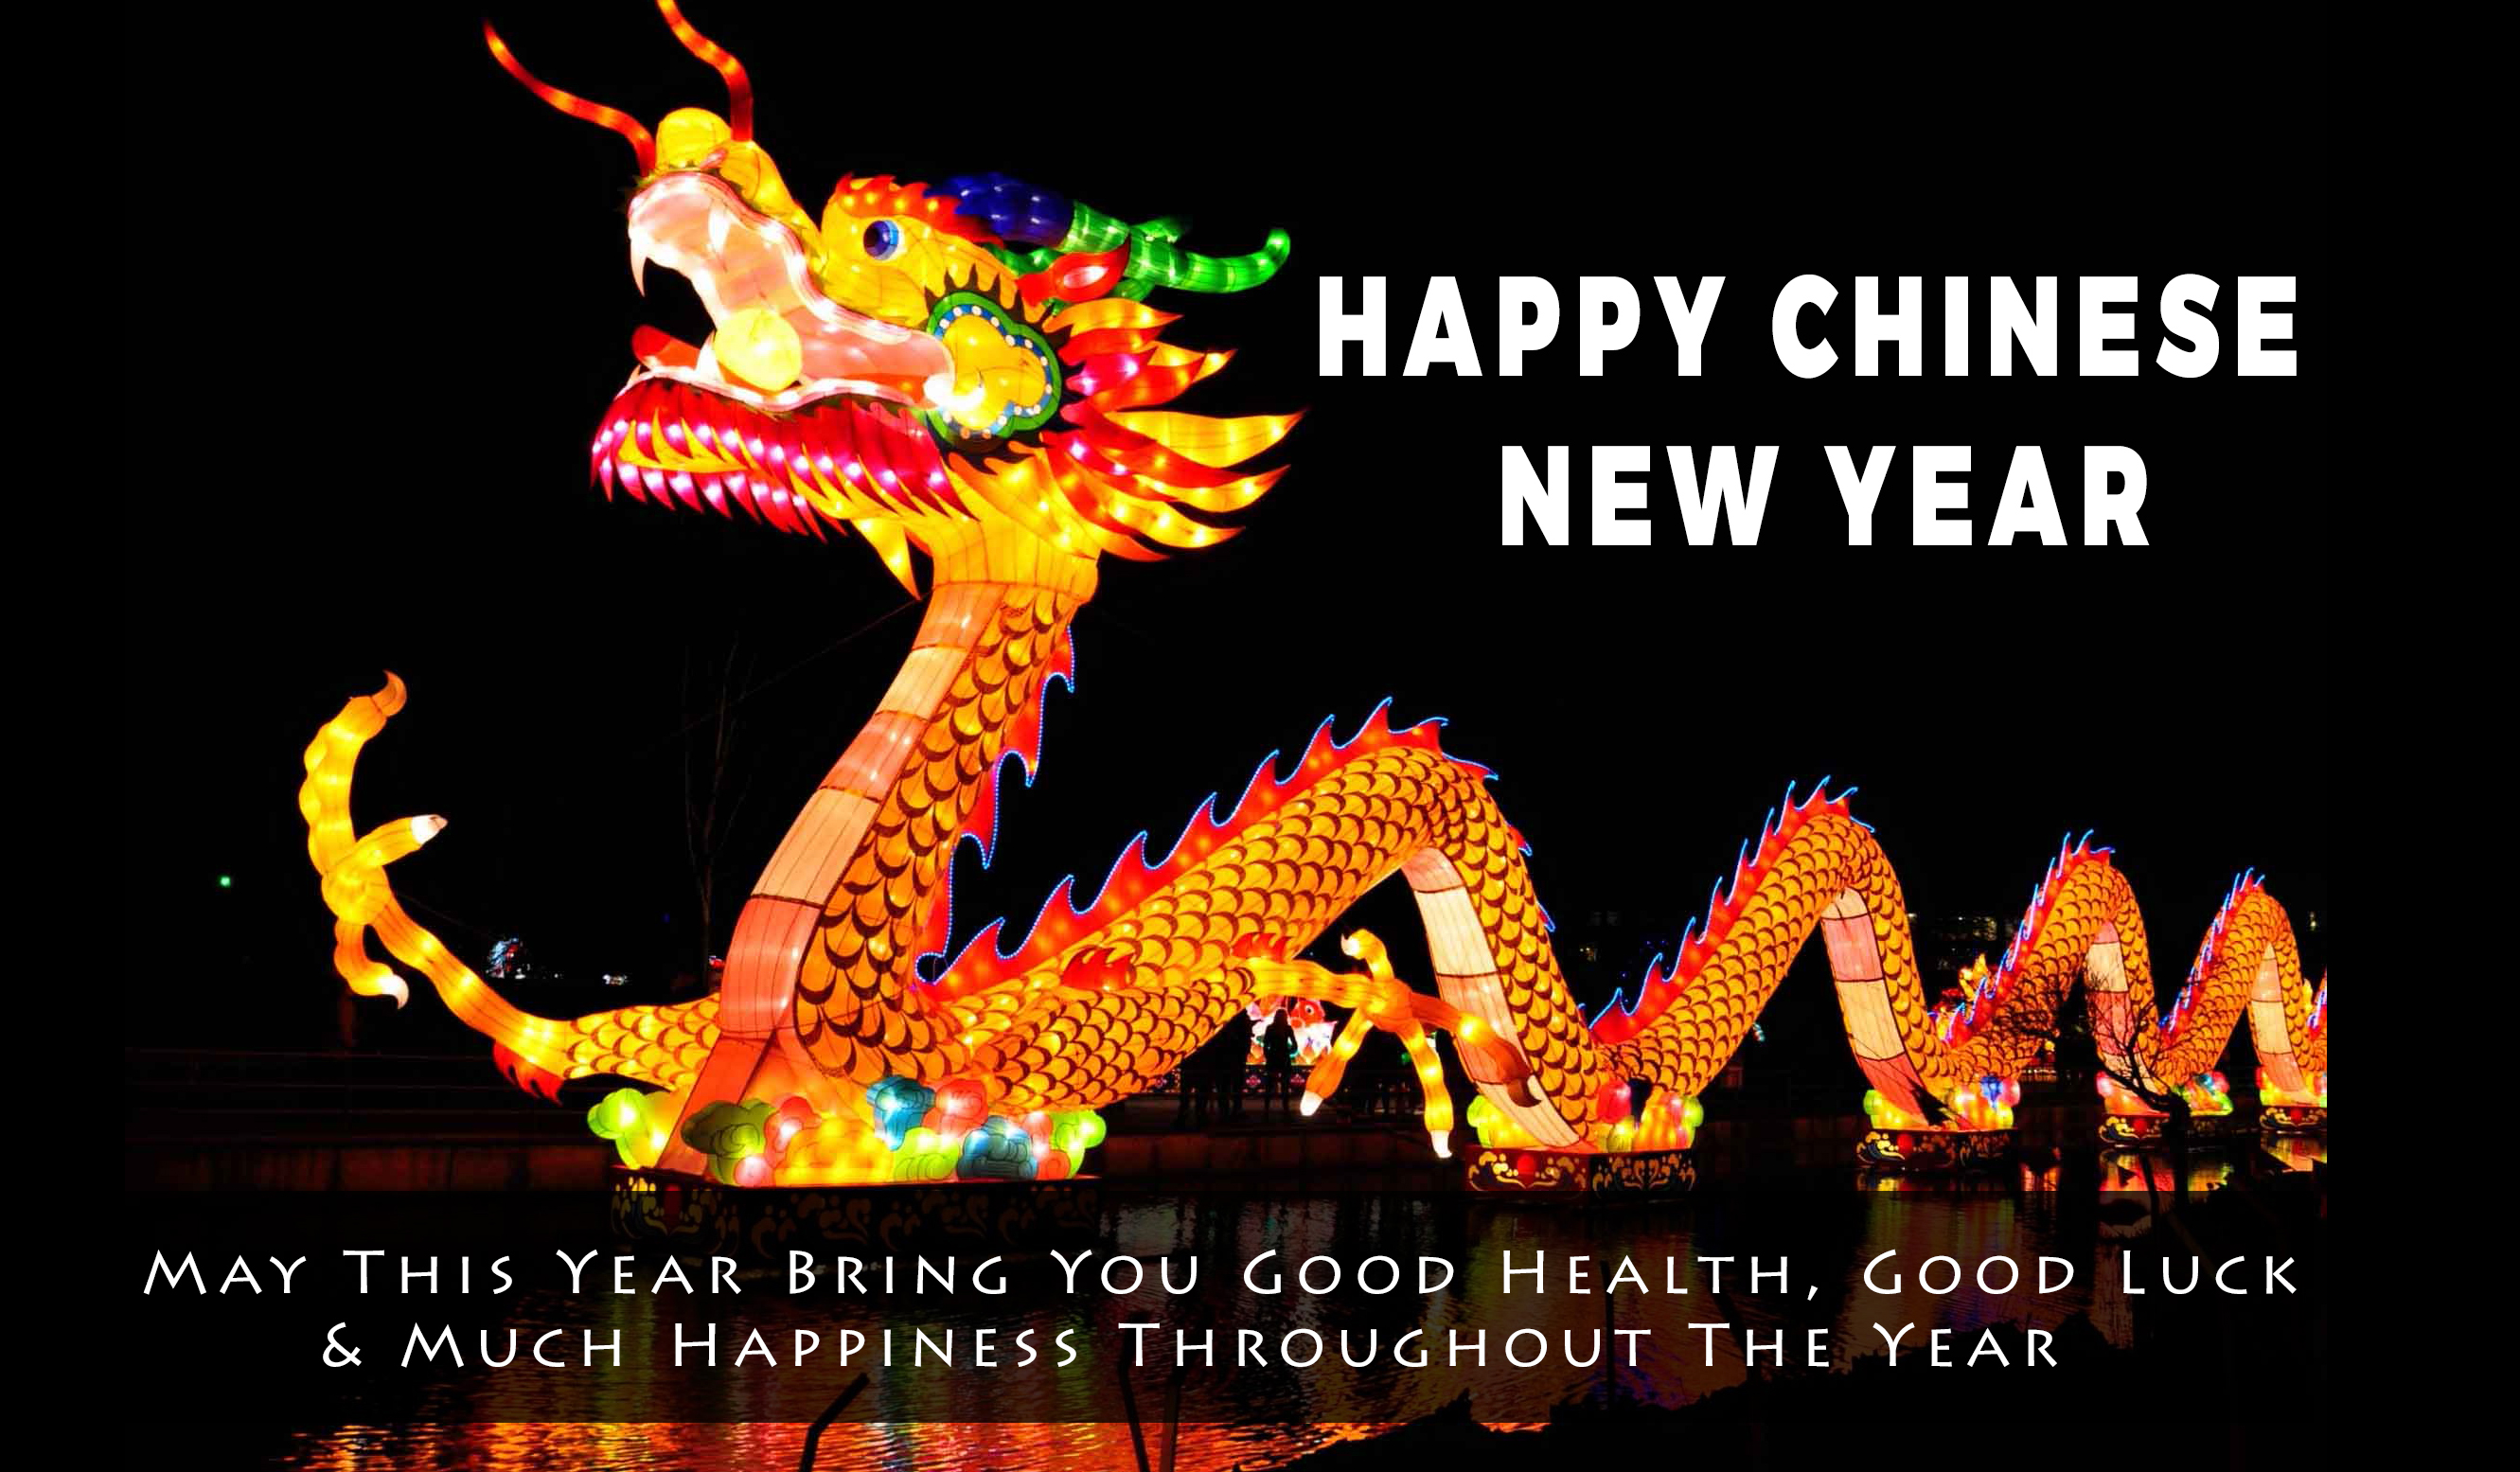 How is Chinese New Year celebrated?